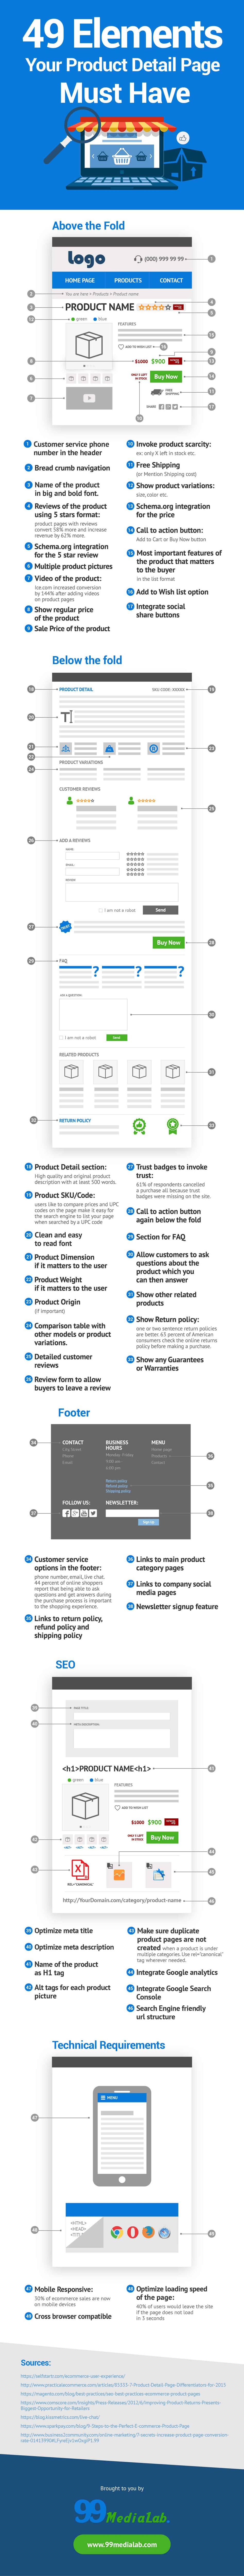 The Perfect Product Detail Page Infographic